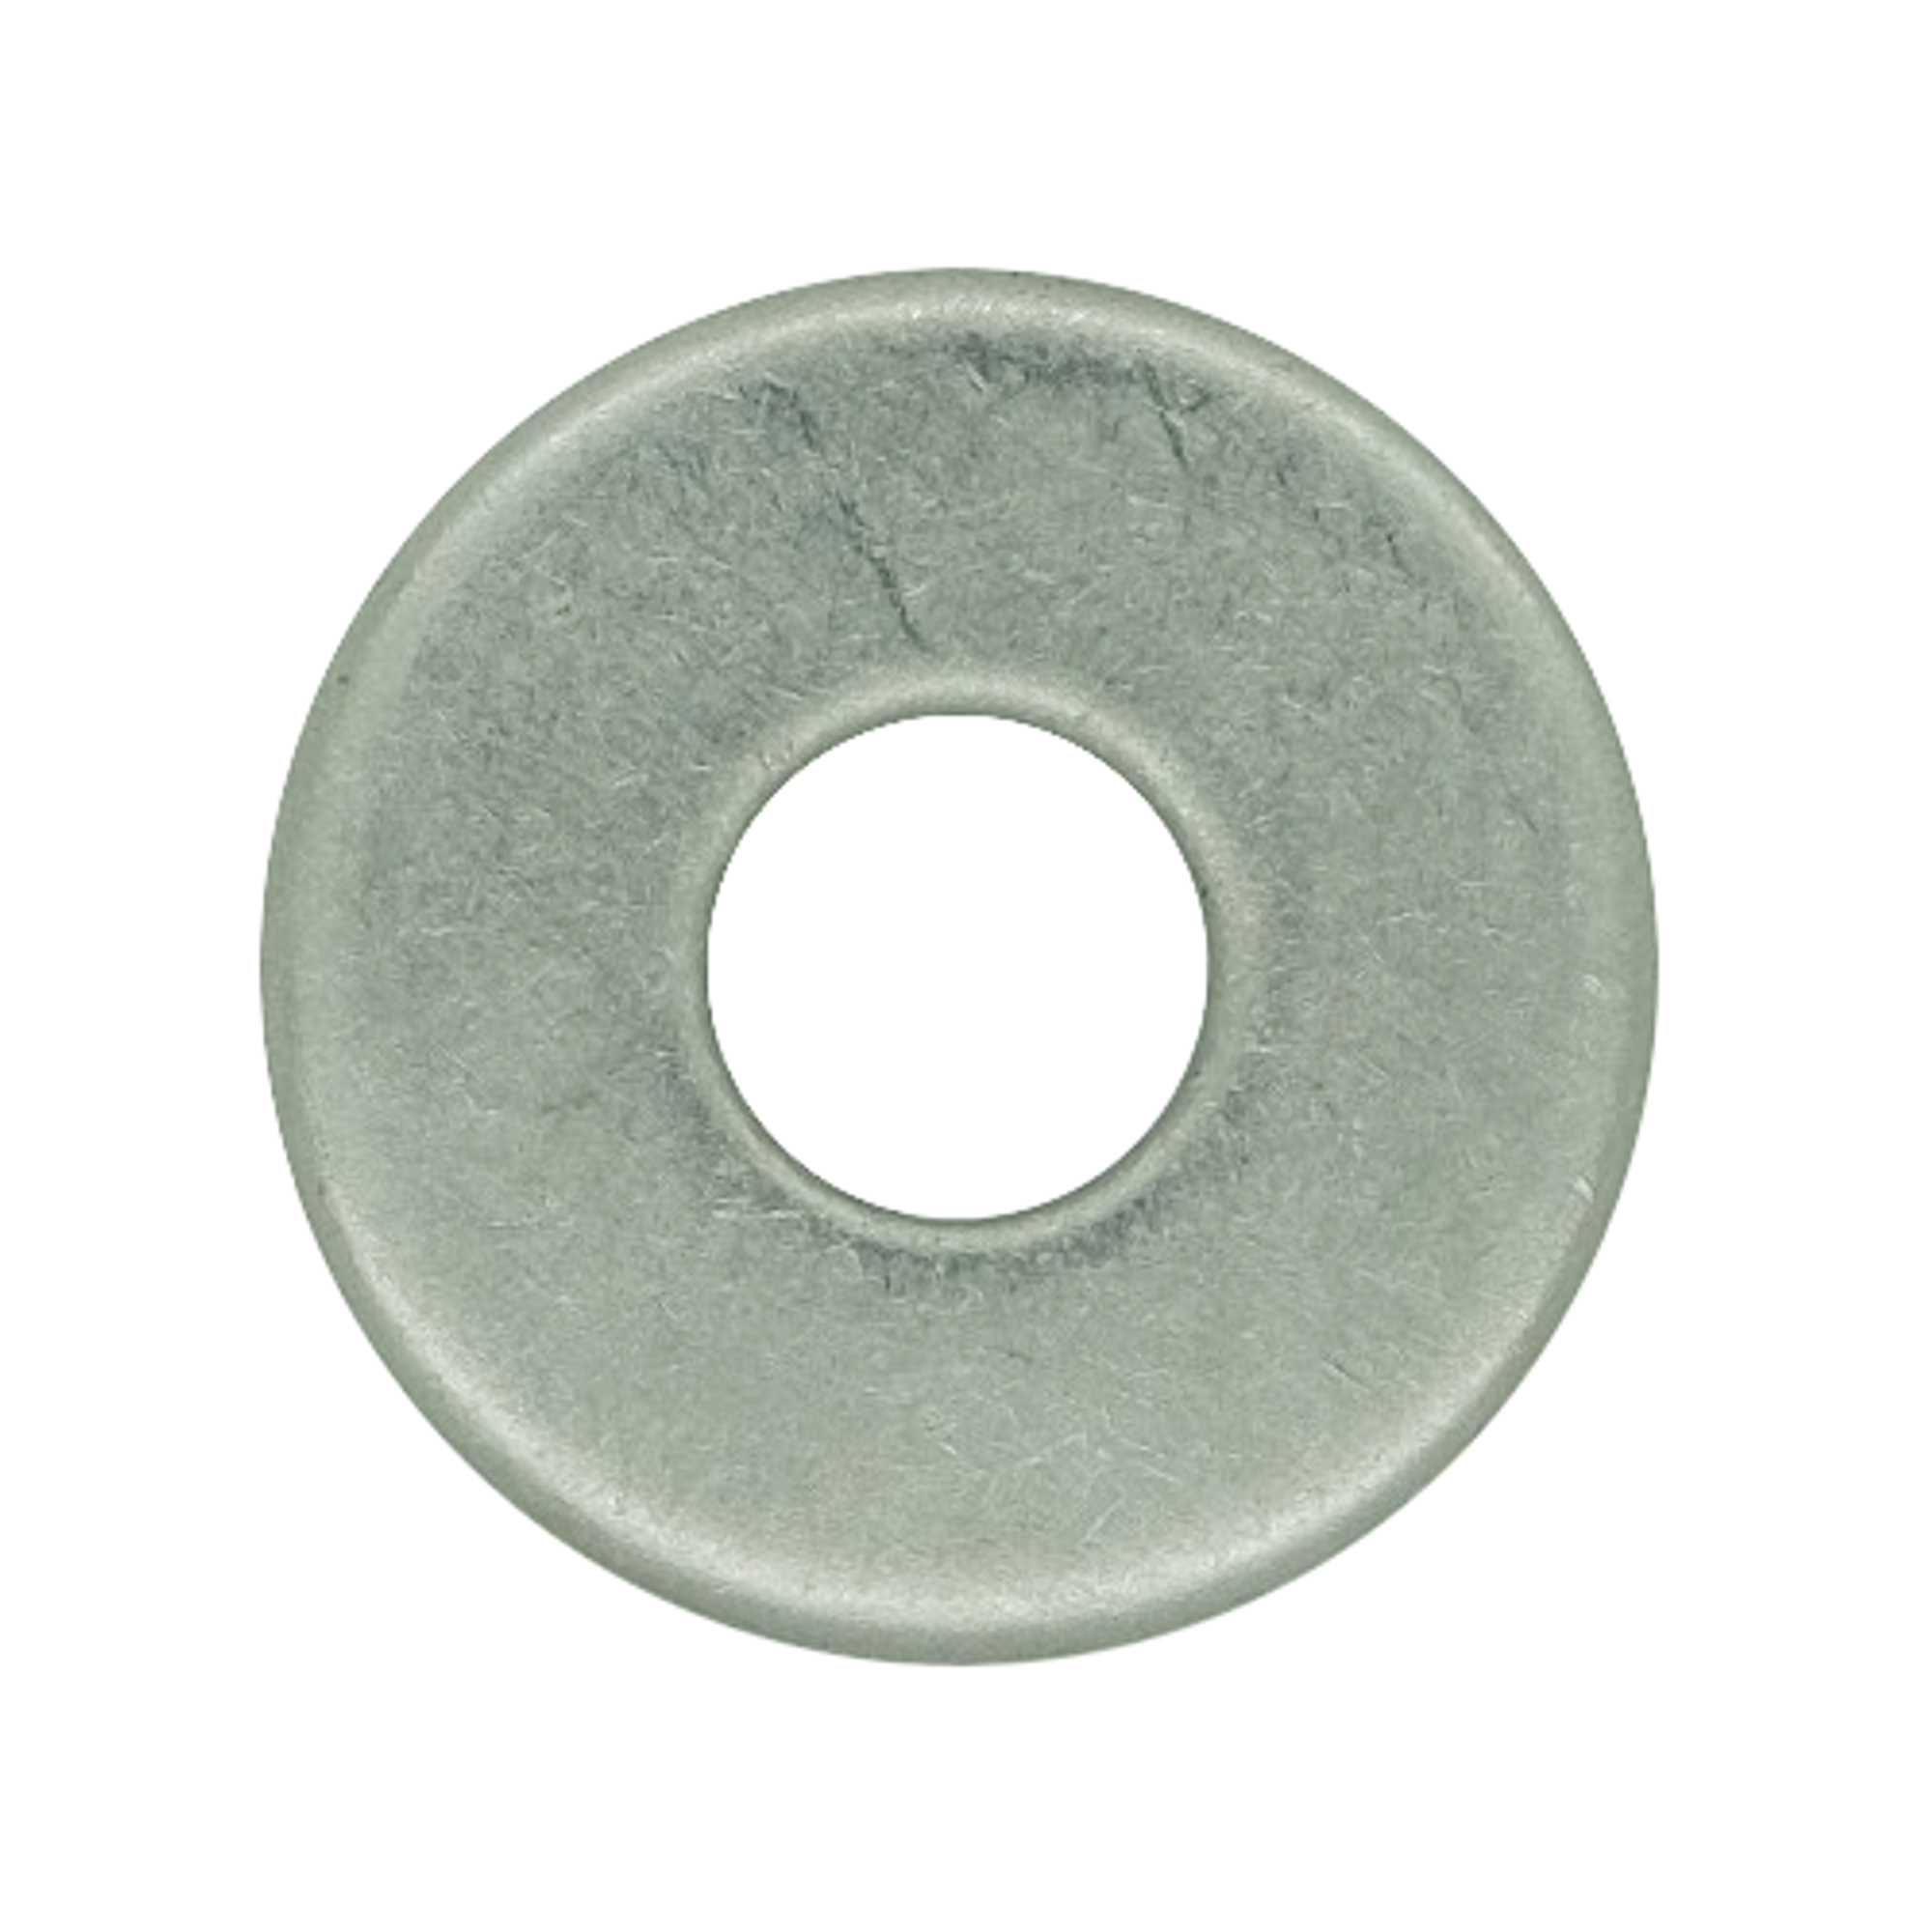 M10 Stainless Steel Penny Washer 30mm x 1.5mm